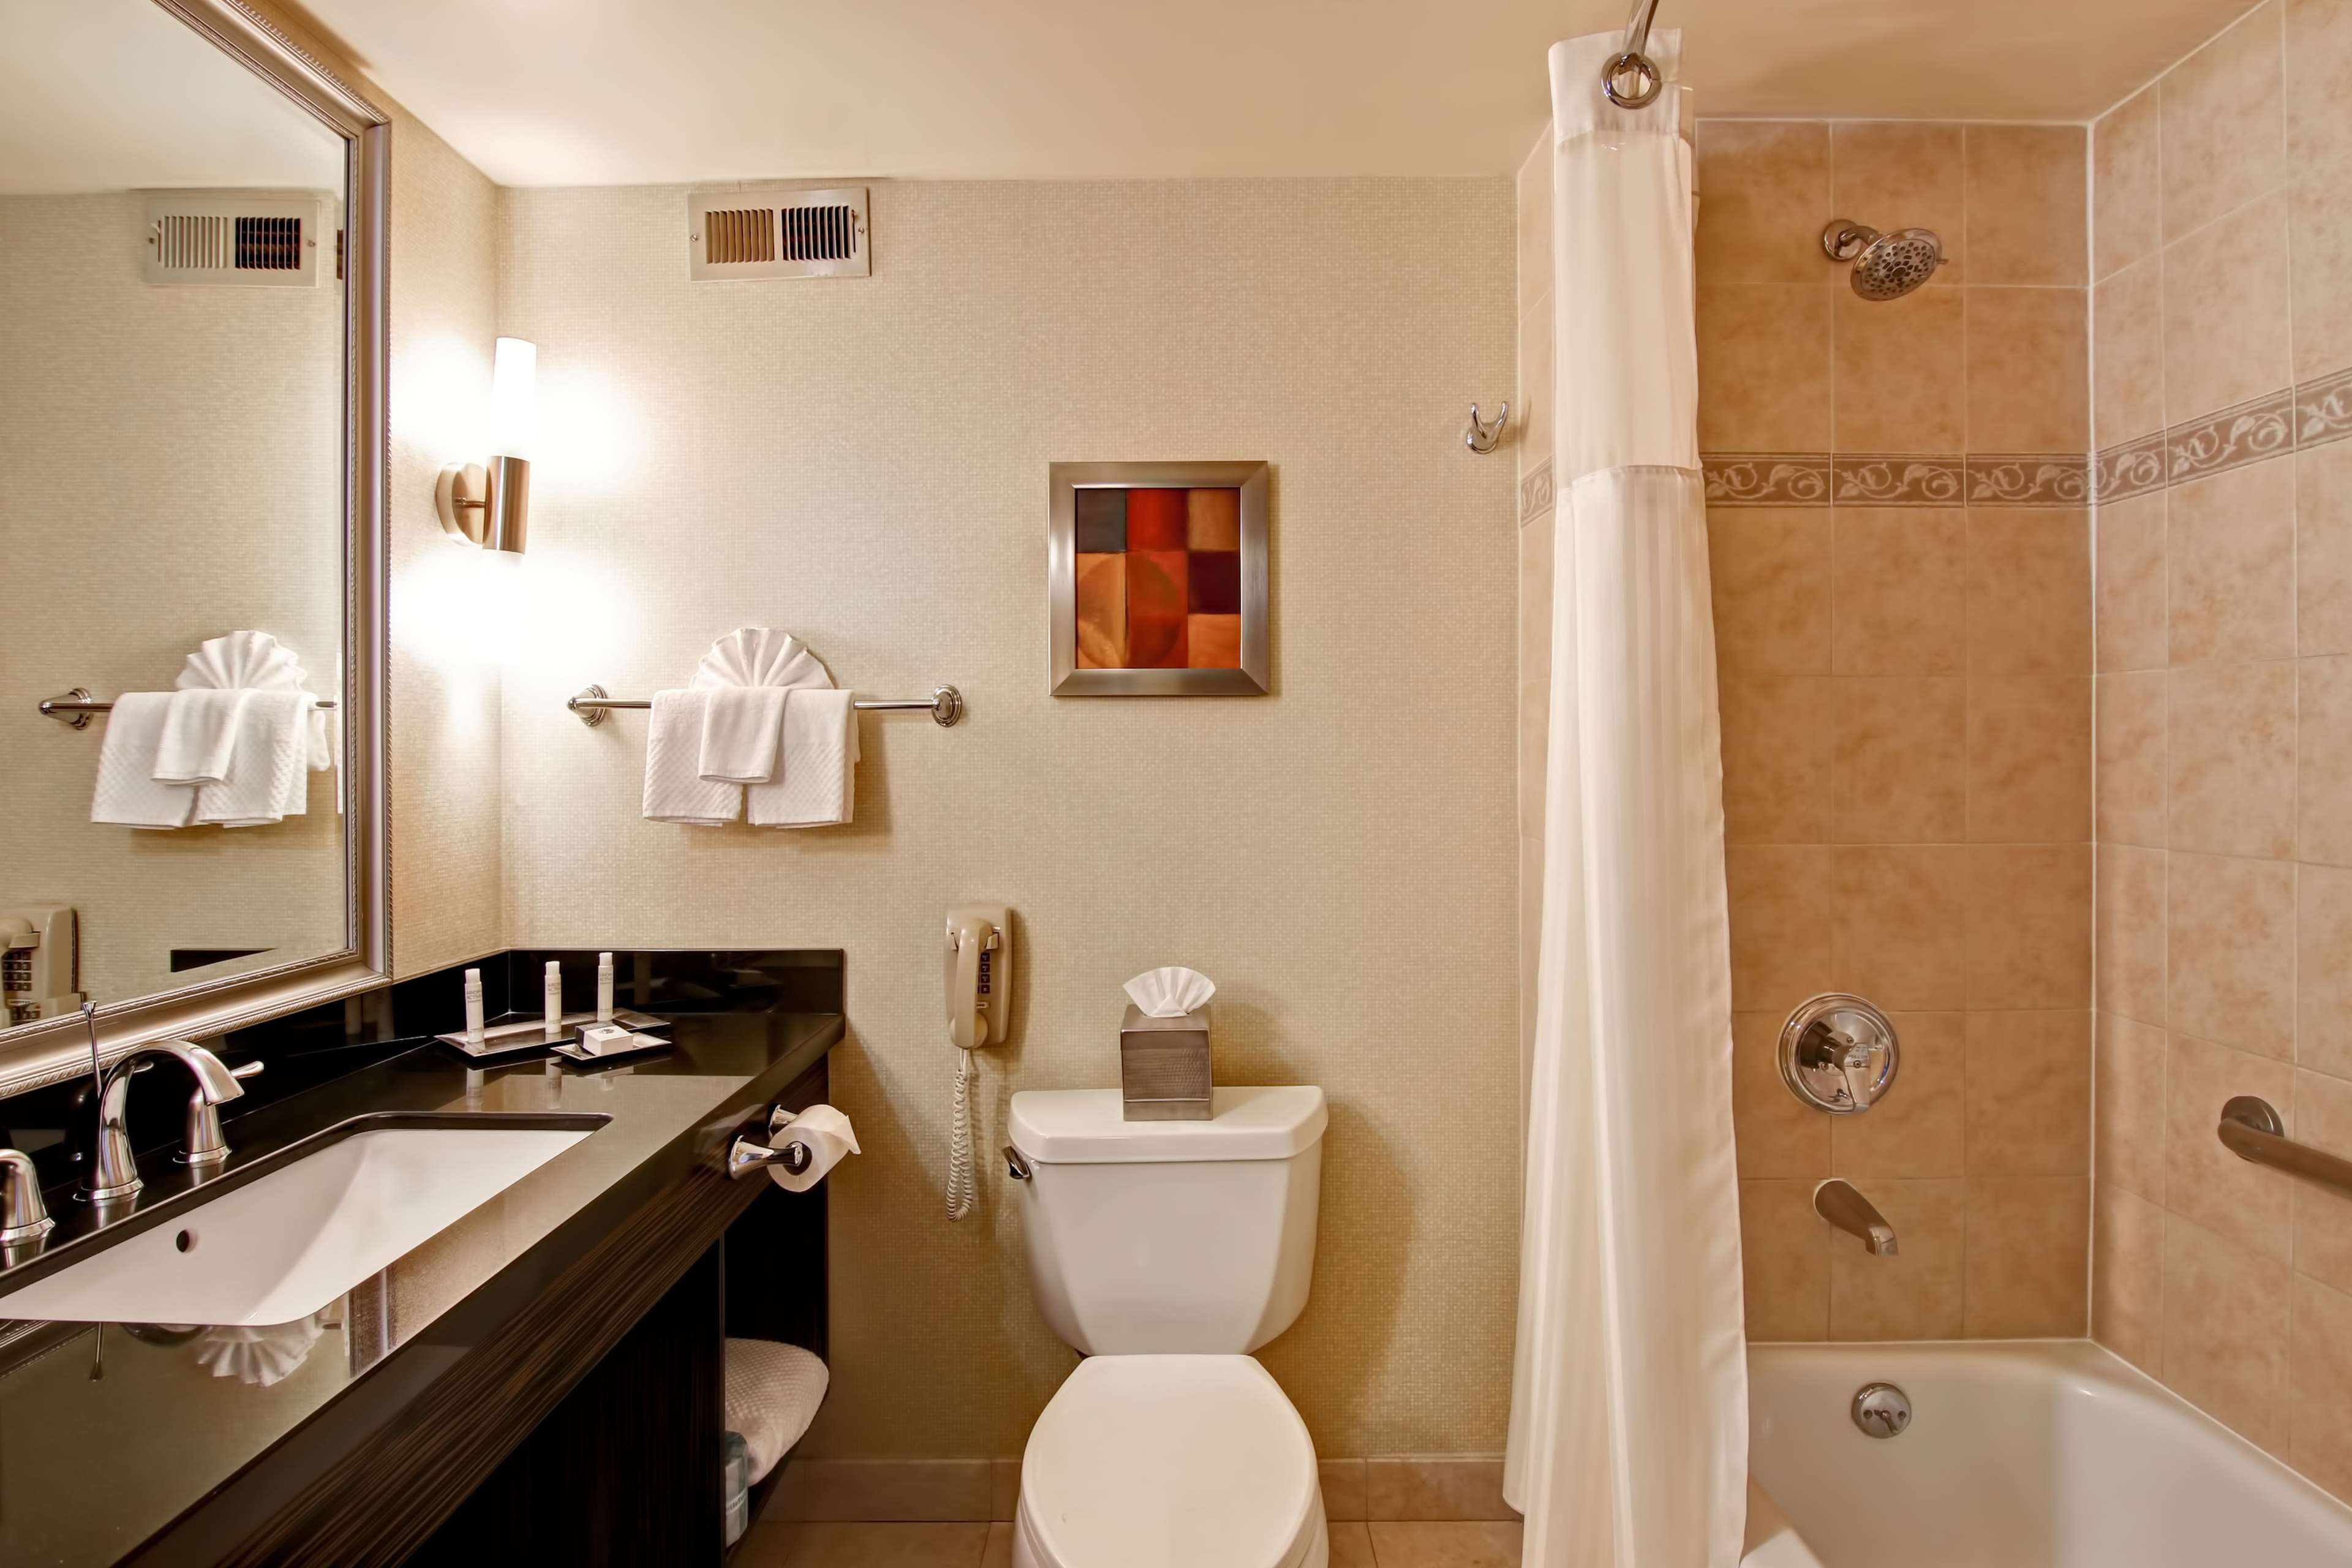 DoubleTree by Hilton Hotel Pleasanton at the Club image 39